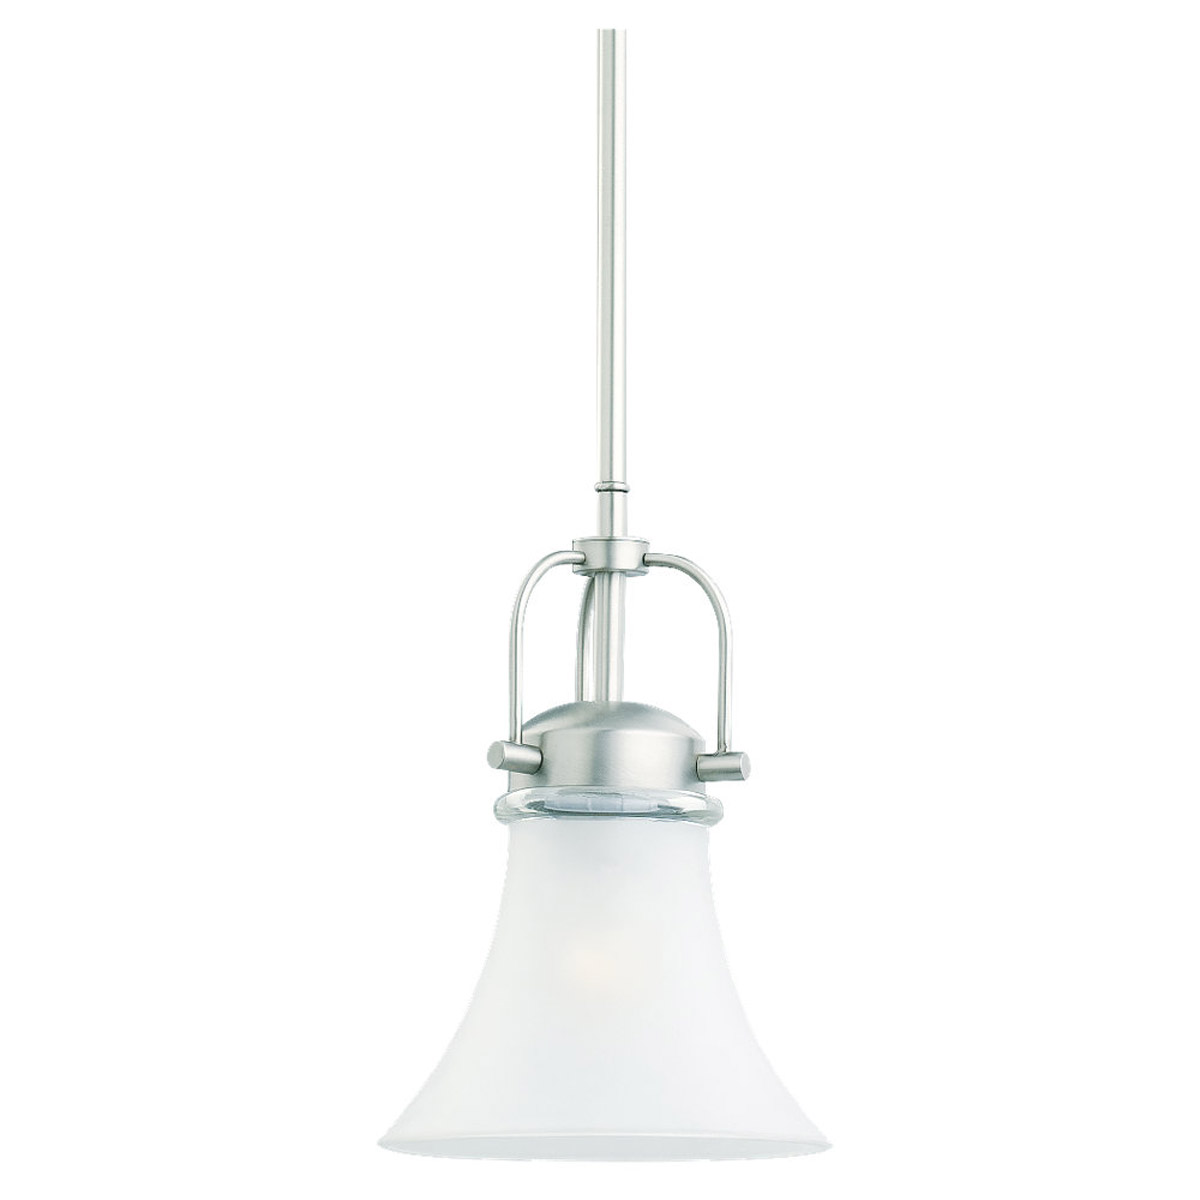 Sea Gull Lighting Newport 1 Light Mini Pendant in Antique Brushed Nickel 61283-965